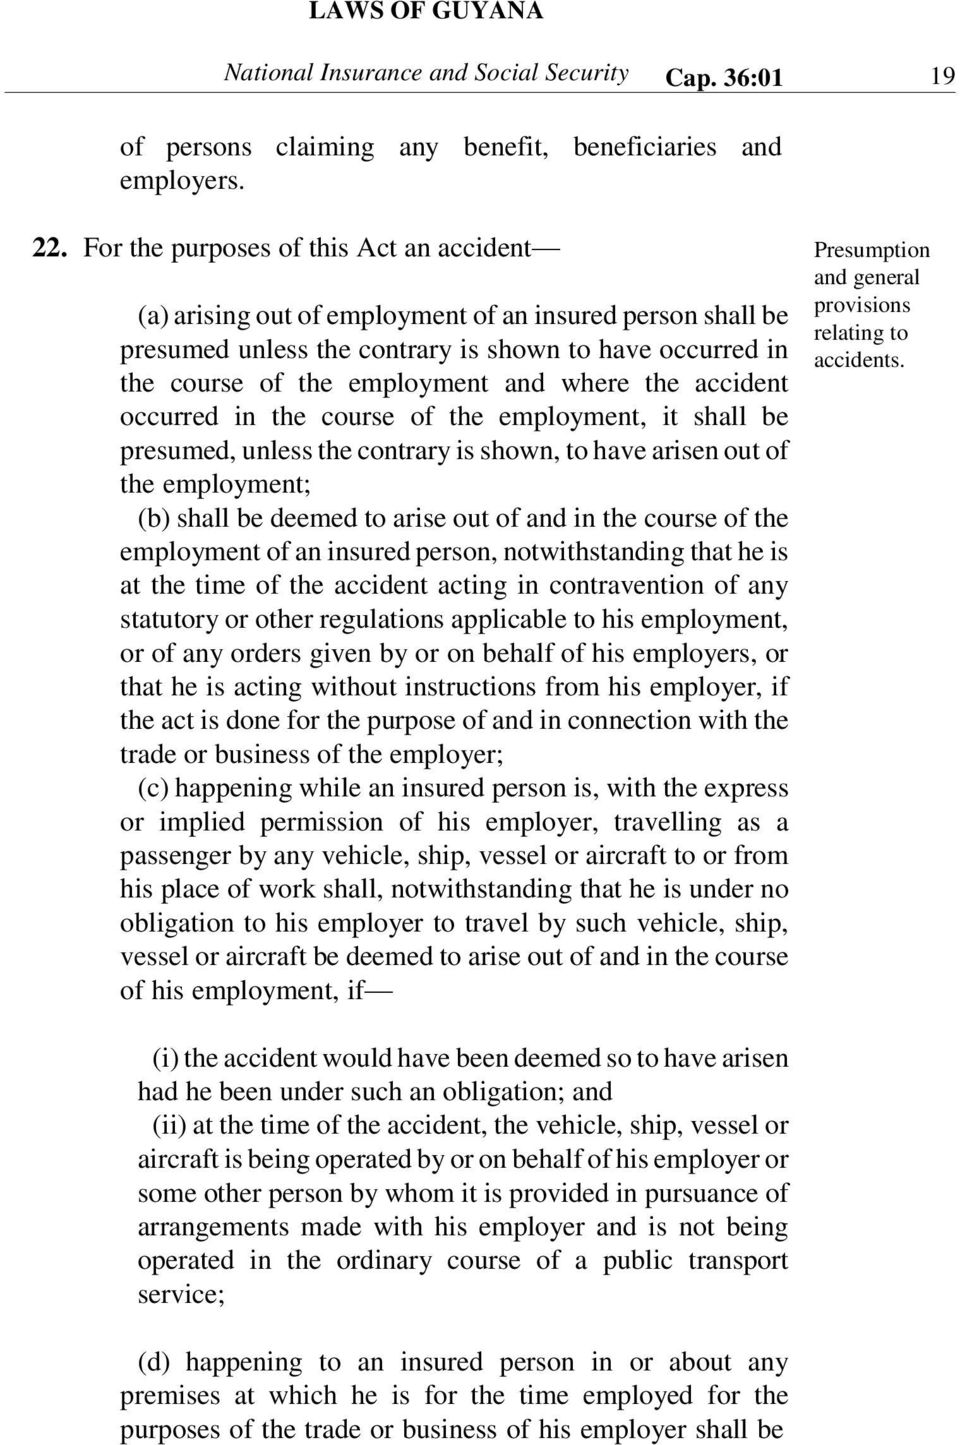 the accident occurred in the course of the employment, it shall be presumed, unless the contrary is shown, to have arisen out of the employment; (b) shall be deemed to arise out of and in the course